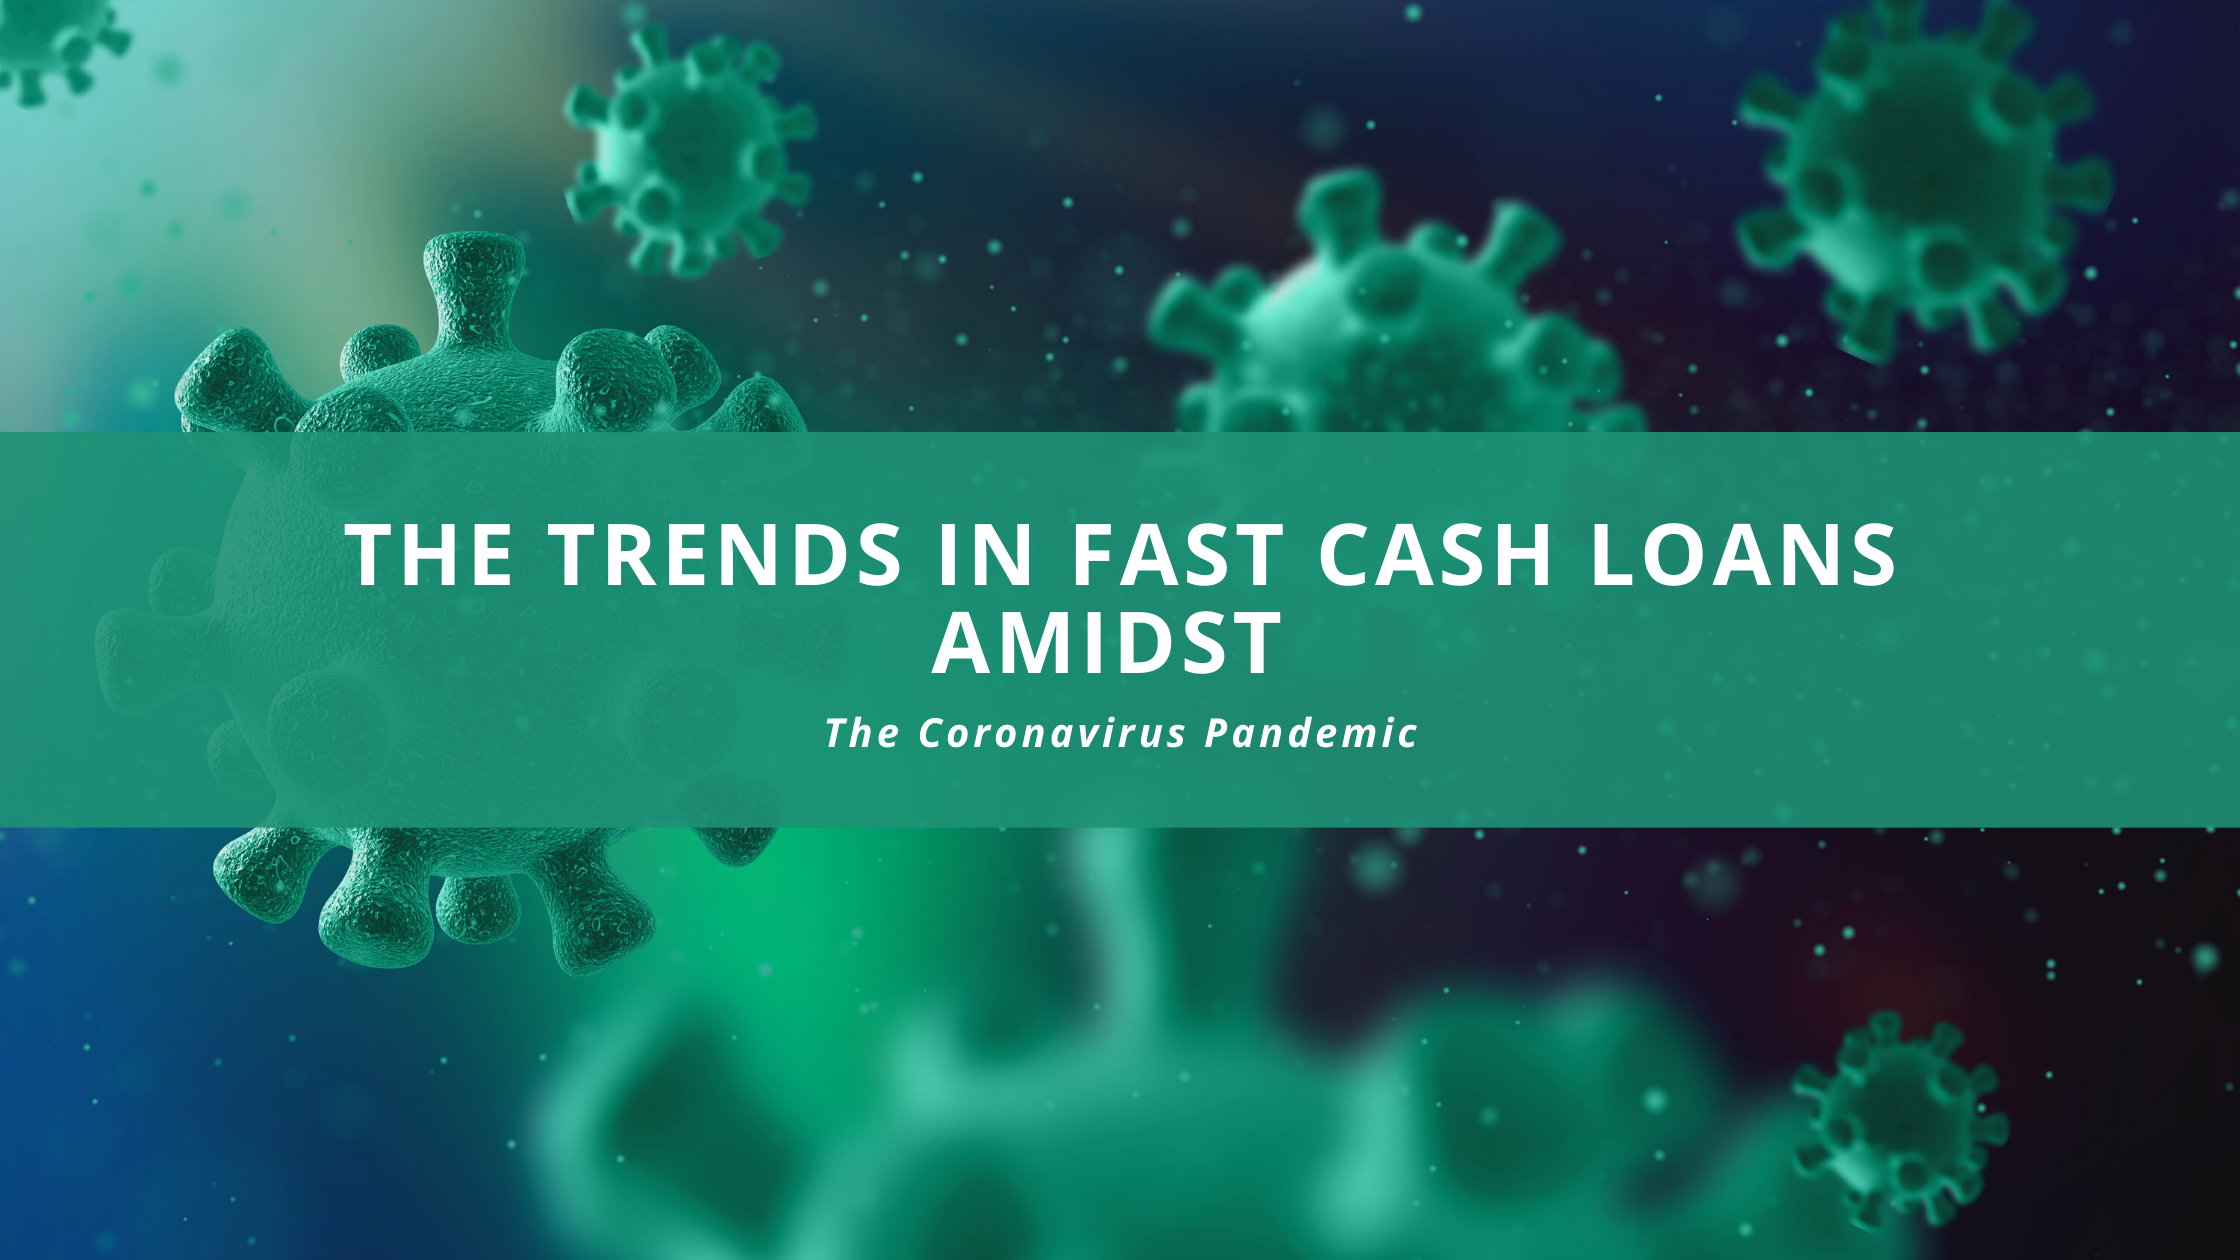 The Trends in Fast Cash Loans Amidst